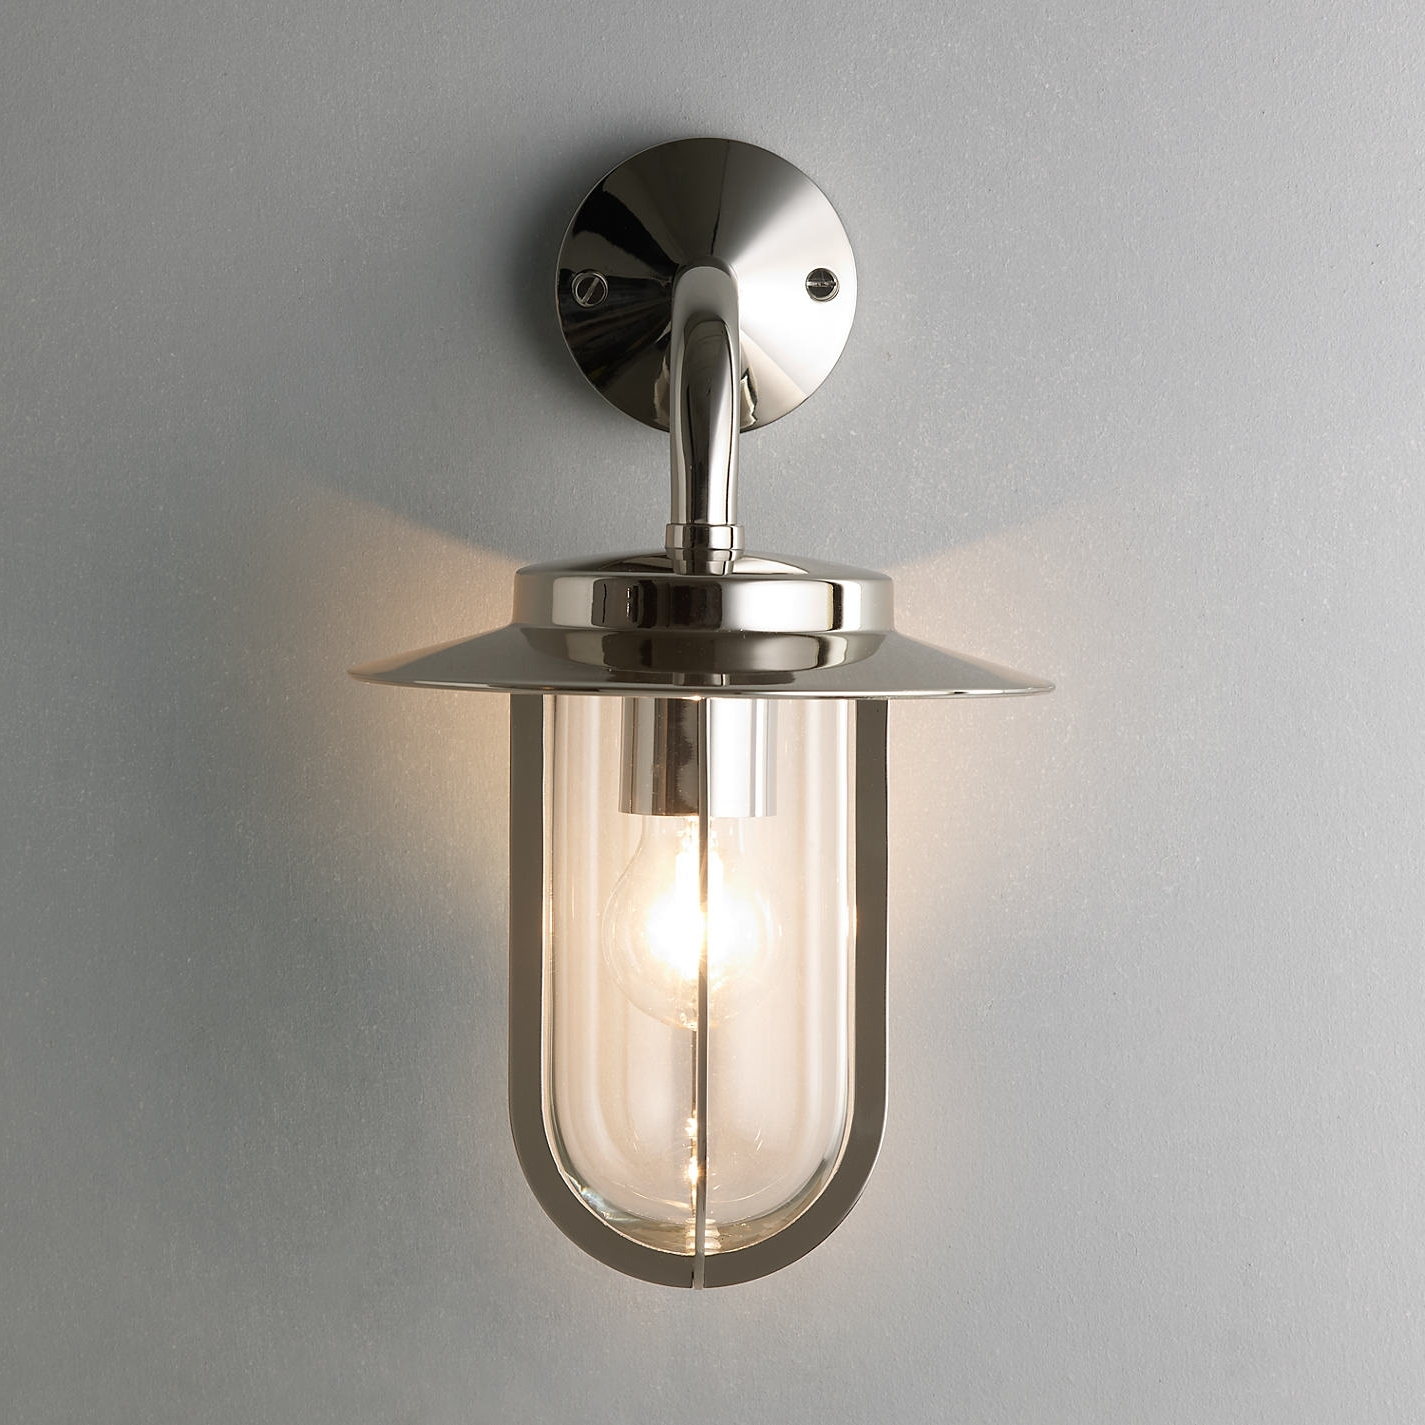 Favorite Outdoor Wall Lights With Pir Intended For Light : Great Outdoor Wall Light With Pir Sensor For Your Blue (View 4 of 20)